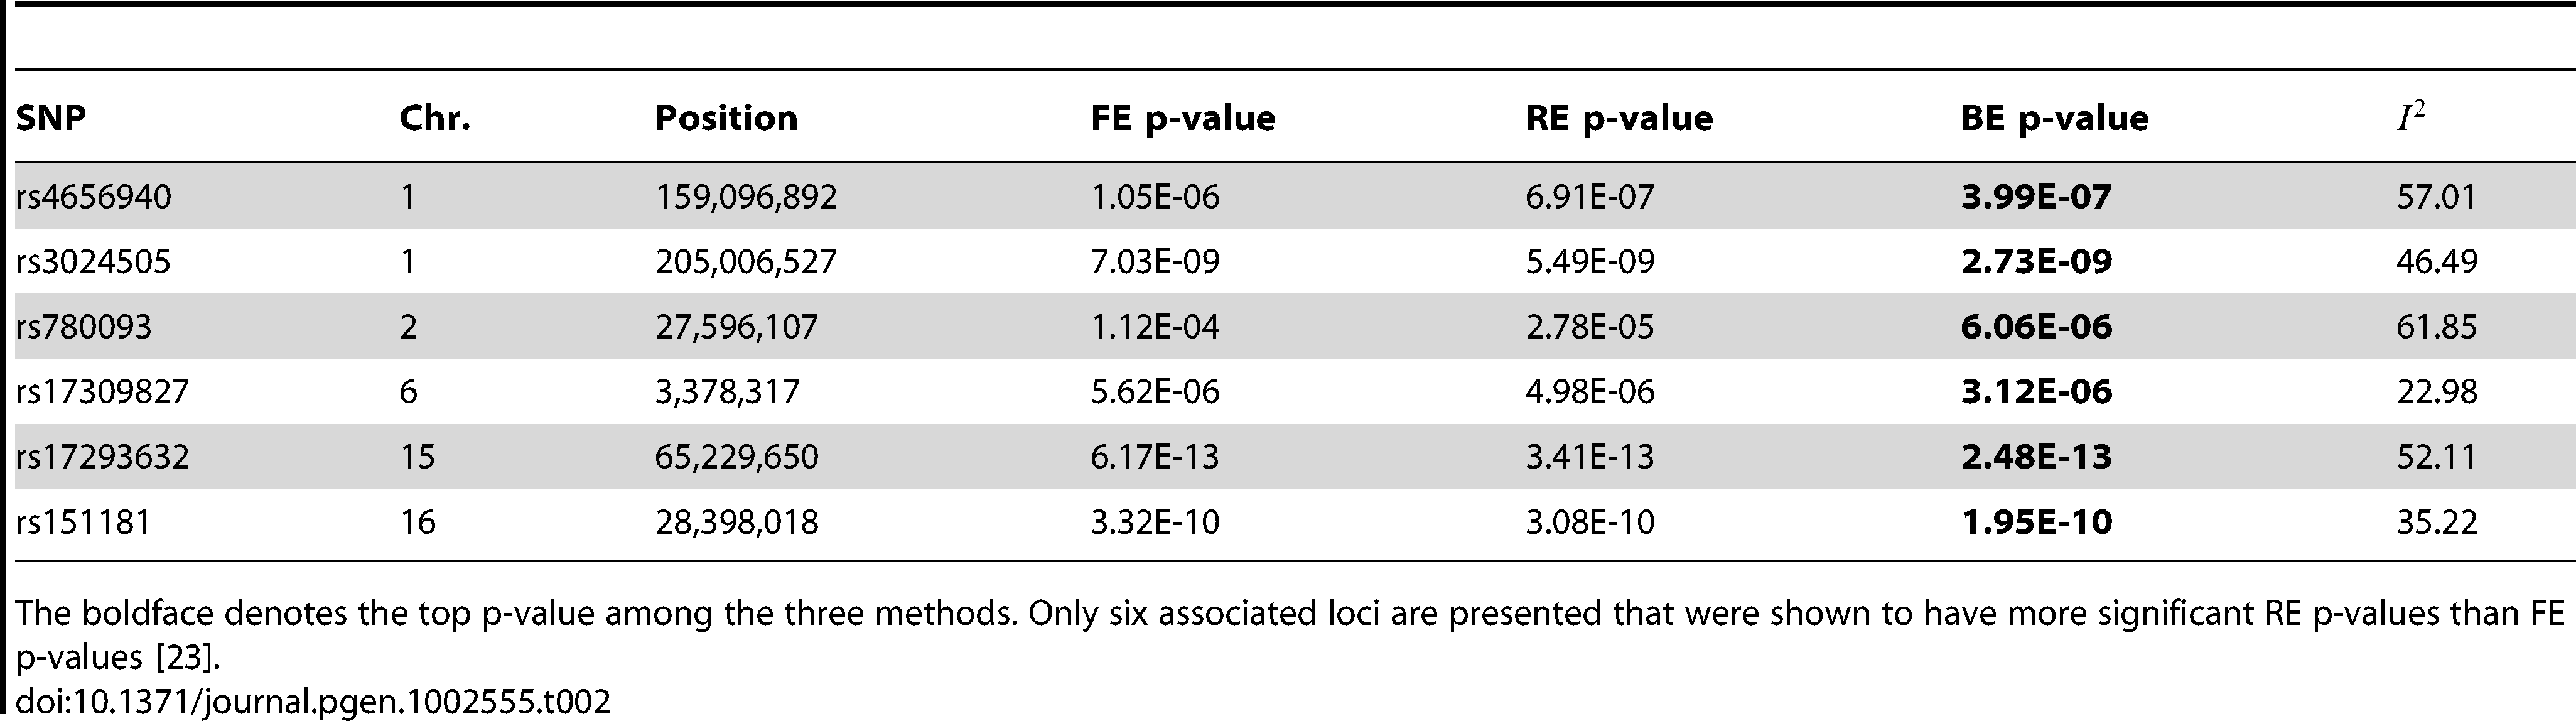 Application of FE, RE, and BE to the Crohns disease meta-analysis results of Franke <i>et al.</i> <em class=&quot;ref&quot;>[13]</em>.